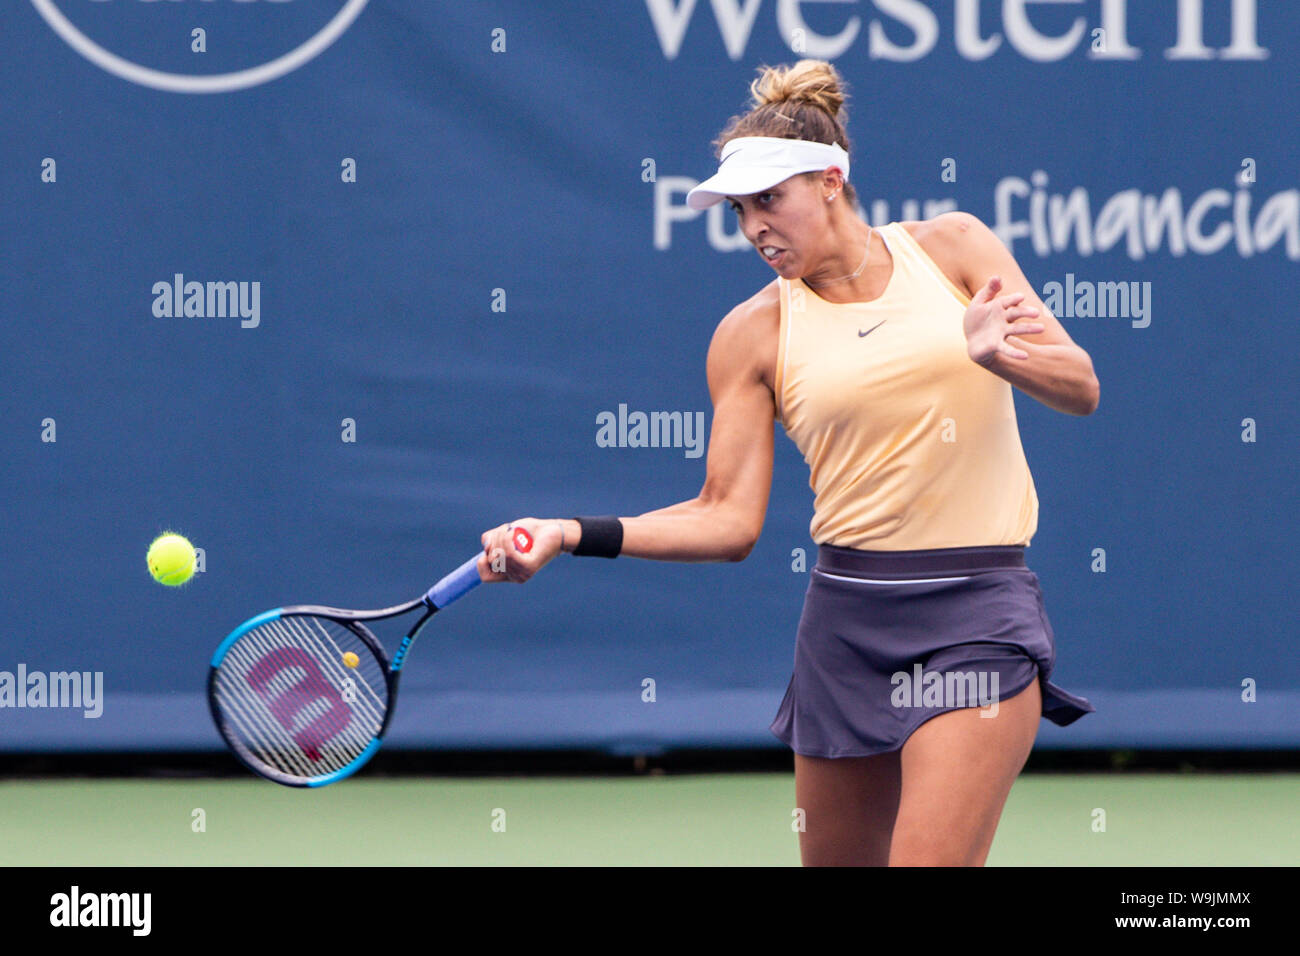 Mason, Ohio, USA. 13th Aug, 2019. Madison Keys (USA) hits a forehand shot during Tuesday's round of the Western and Southern Open at the Lindner Family Tennis Center, Mason, Oh. Credit: Scott Stuart/ZUMA Wire/Alamy Live News Stock Photo